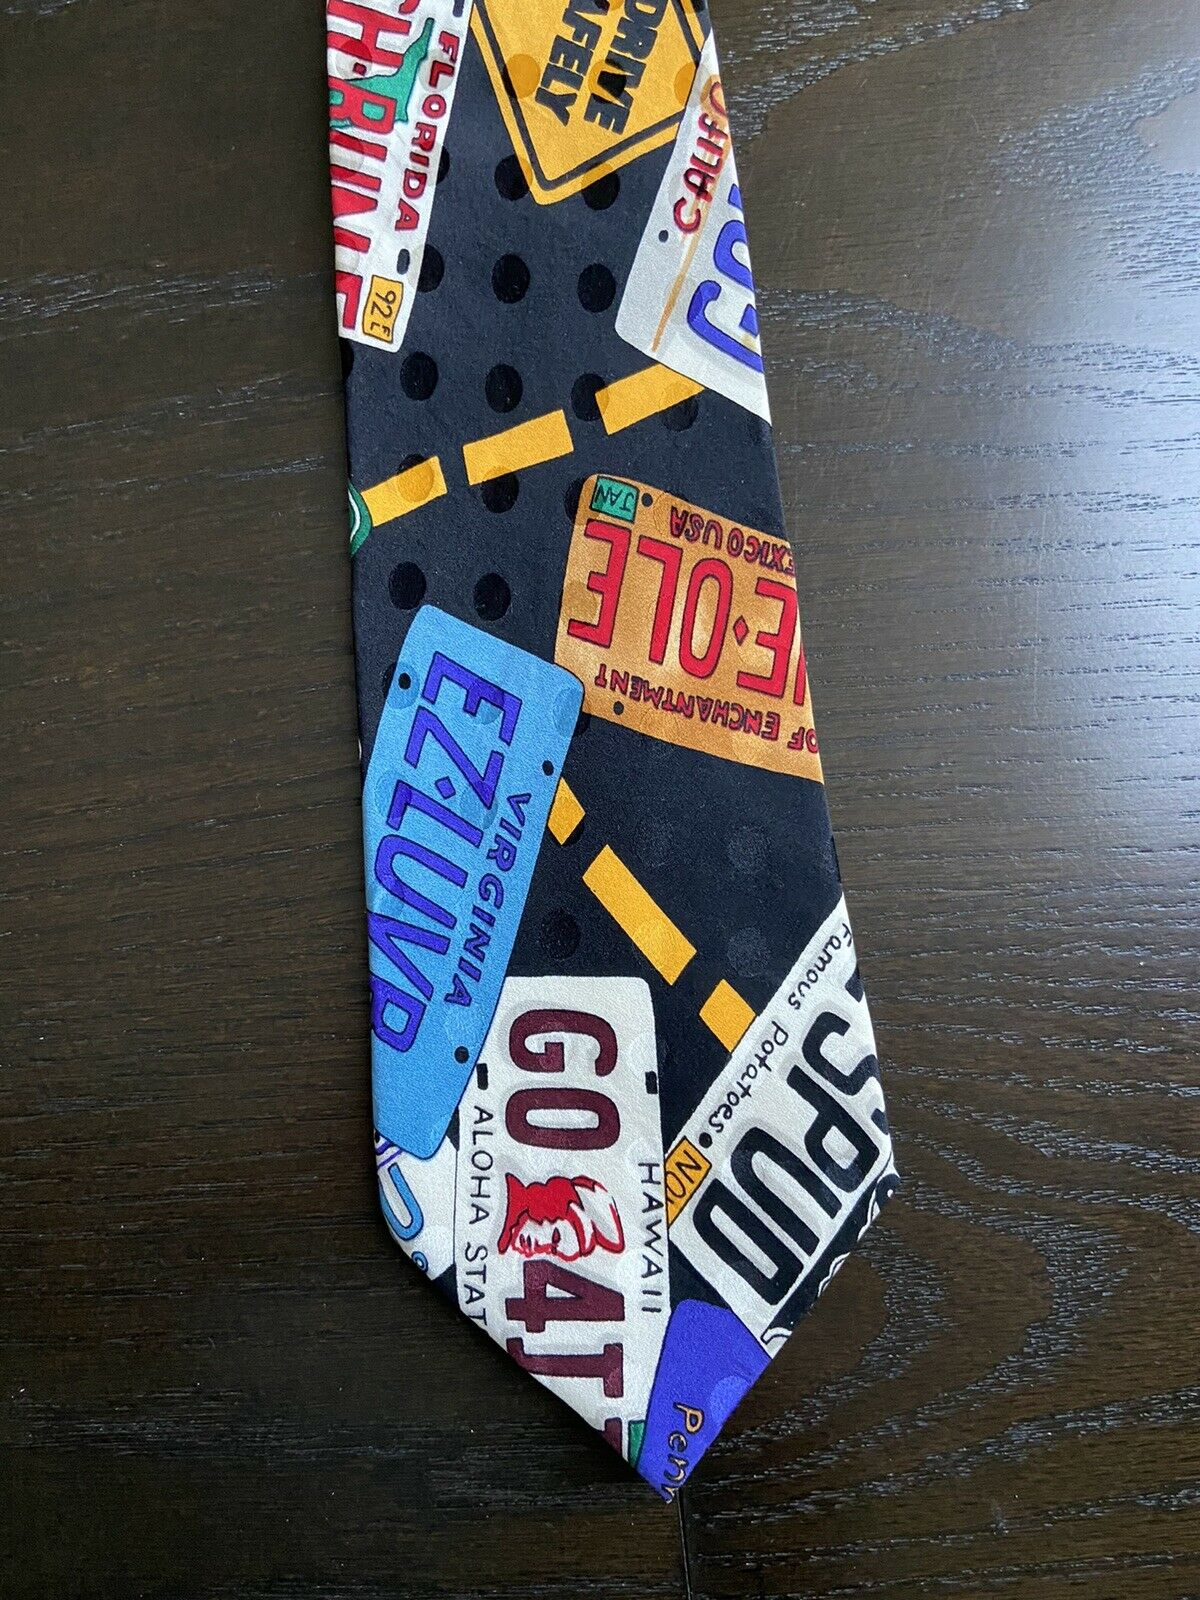 Vintage Licence Plate tie  Nicole Miller United States Licence plates and Road Signs Conversation Necktie 56 x 3.75 Vintage Tie Shop T1339